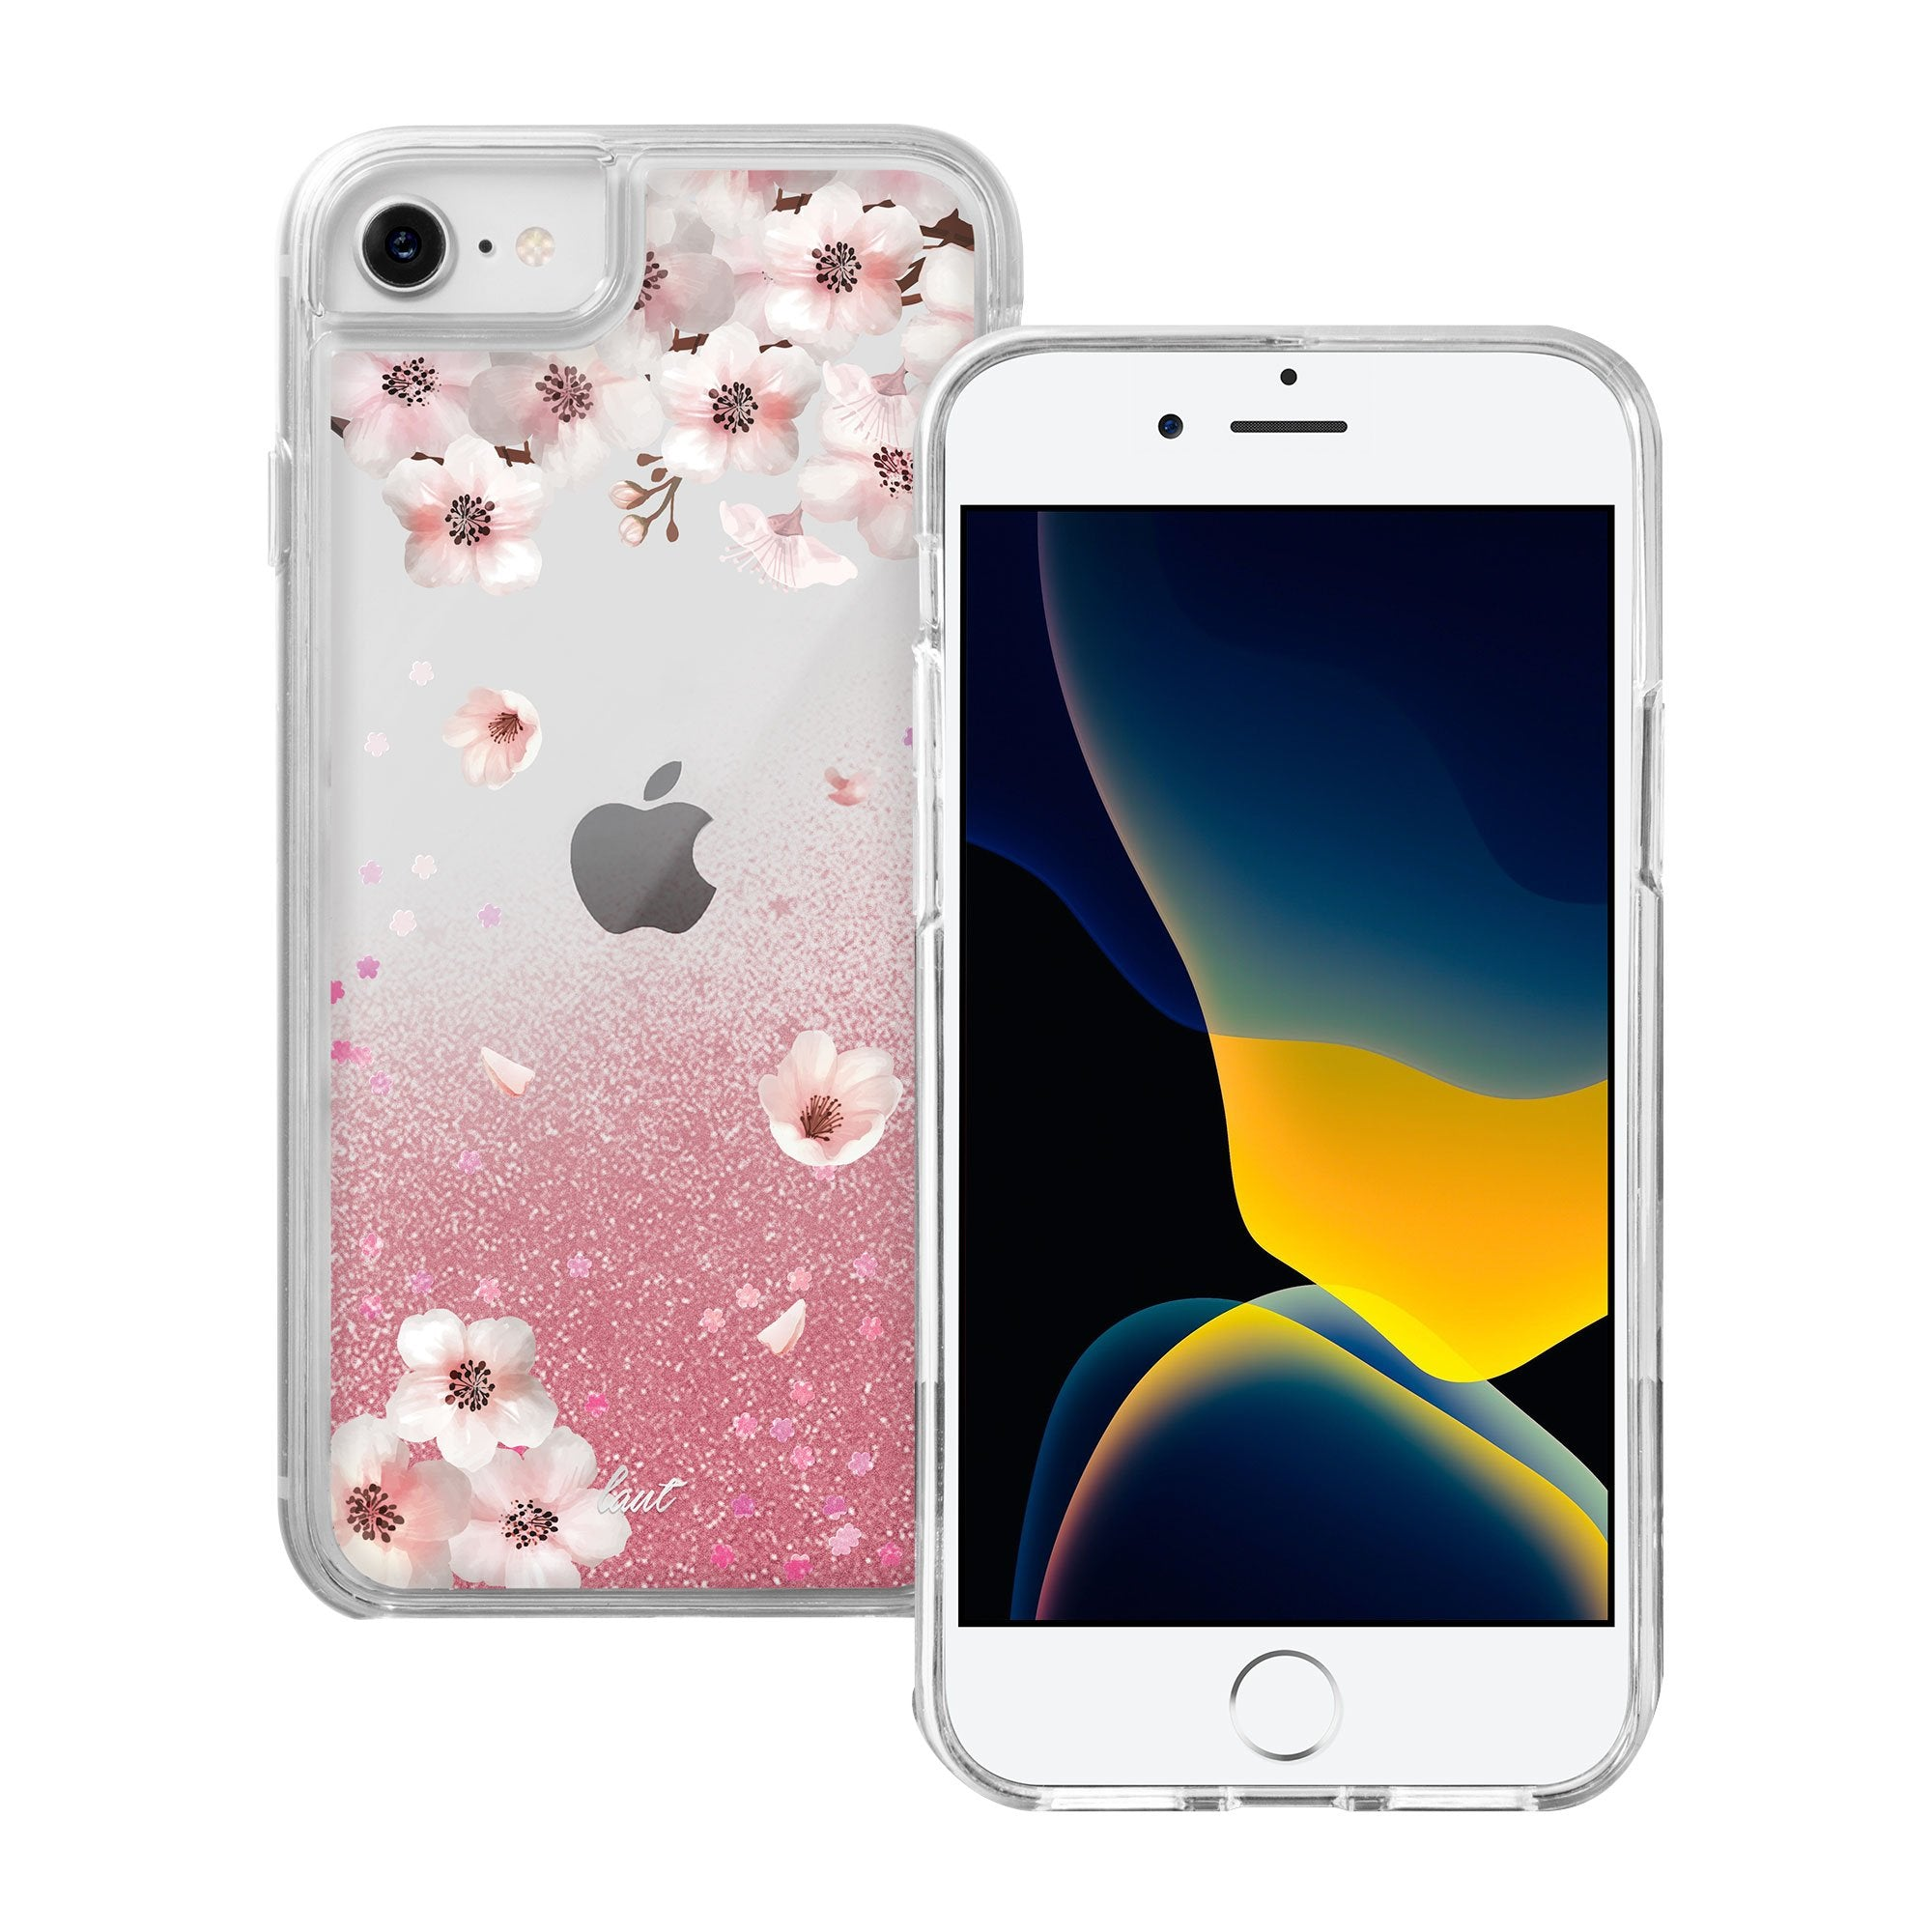 Liquid GLITTER SAKURA case for iPhone SE 2020 / iPhone 8/7 - LAUT Japan